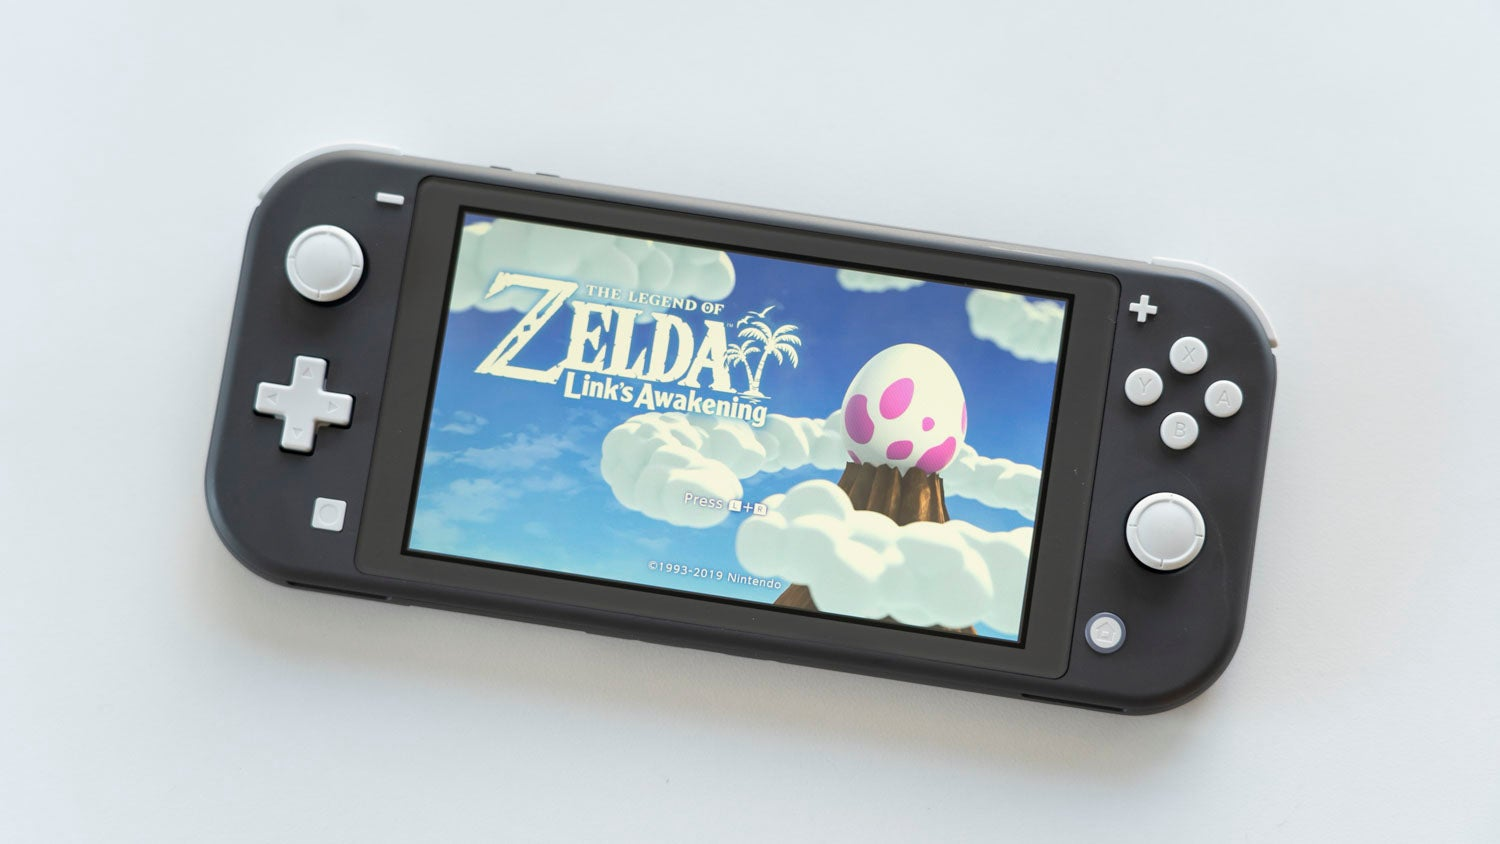 Your Nintendo Account May Have Been Exposed, So Here's How To Enable 2FA